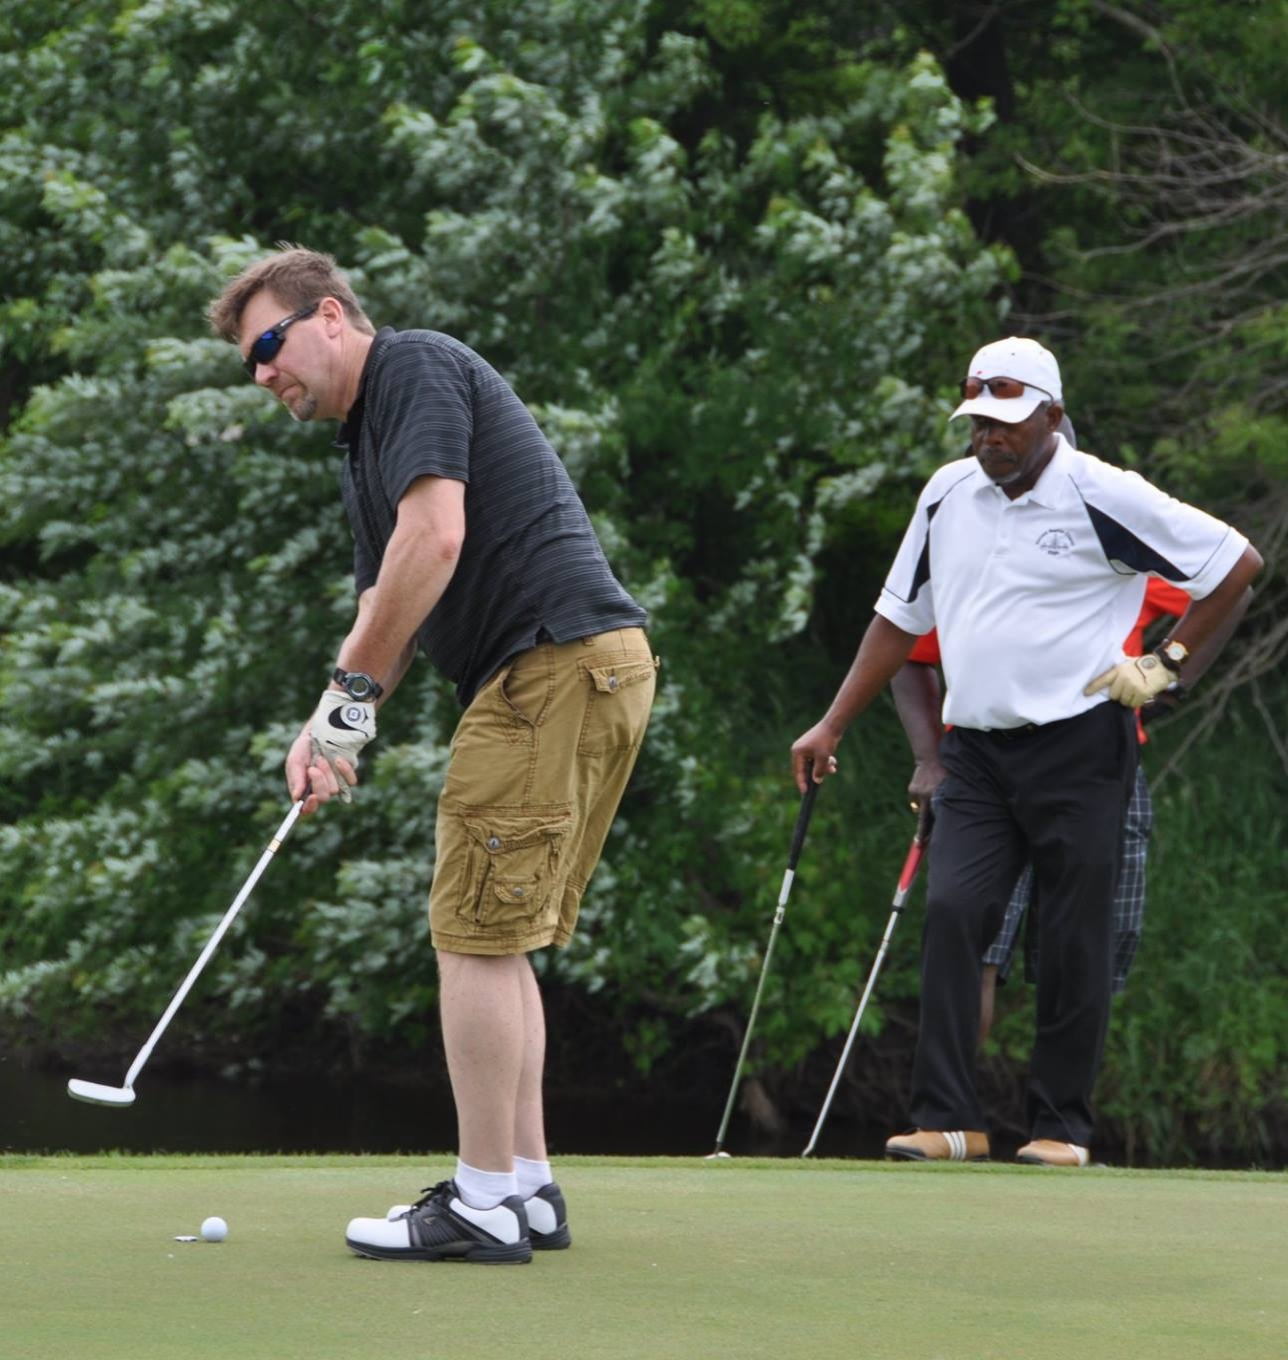 Elgin Academy parents participating at Golf Classic